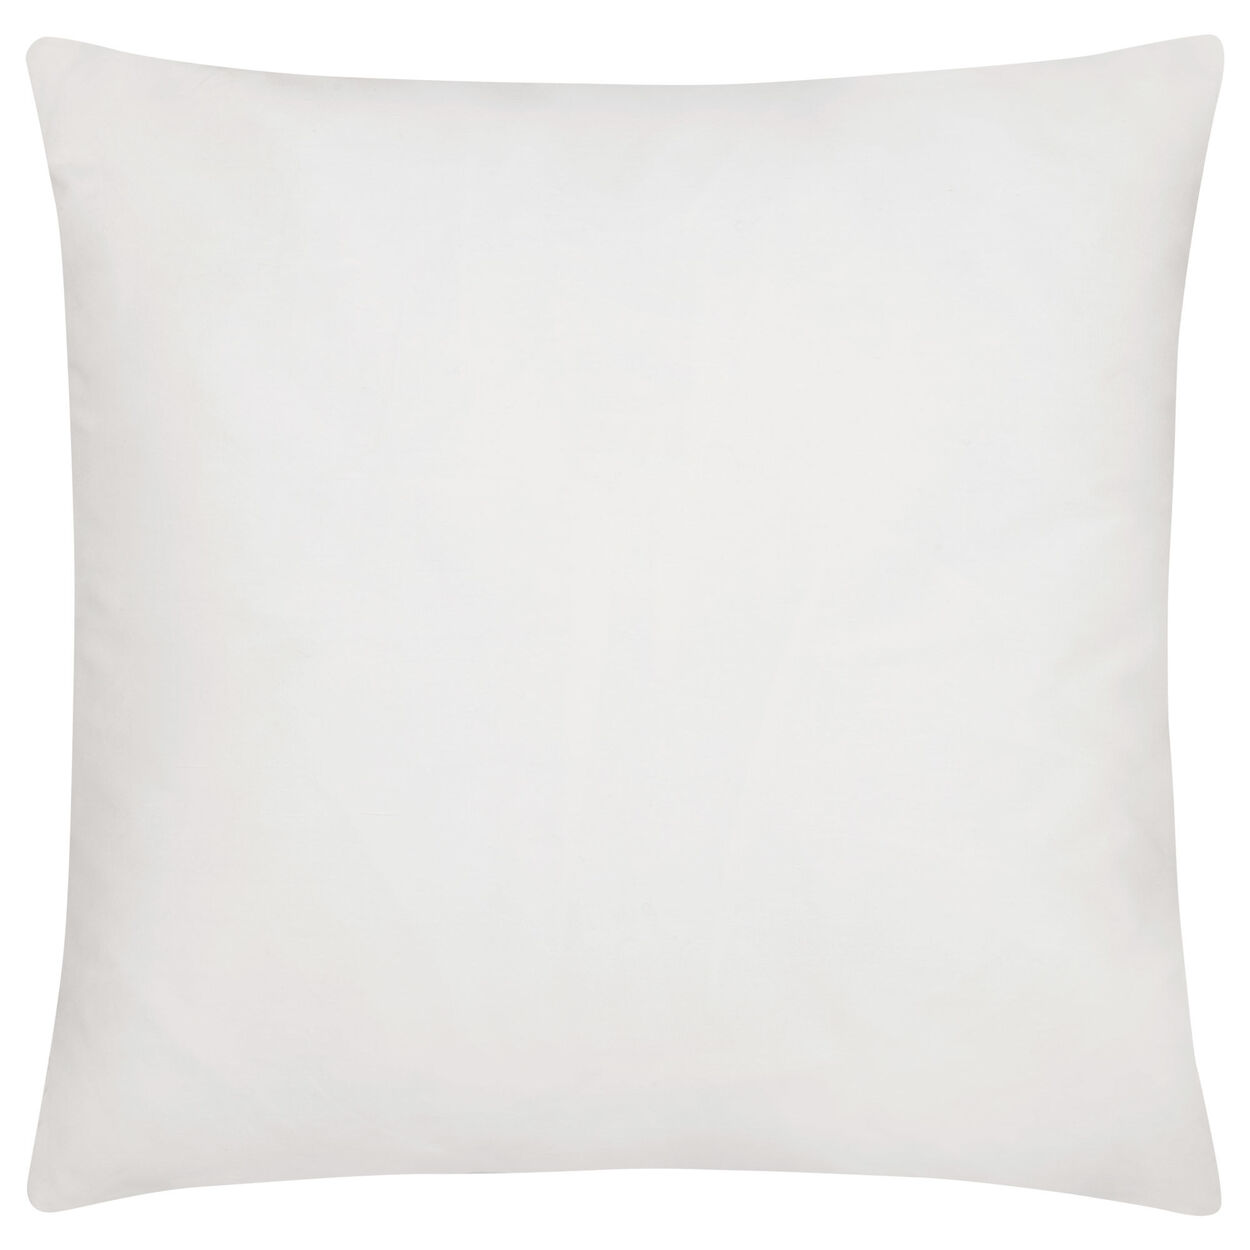 "Zen Spirit Decorative Pillow 18"" x 18"""